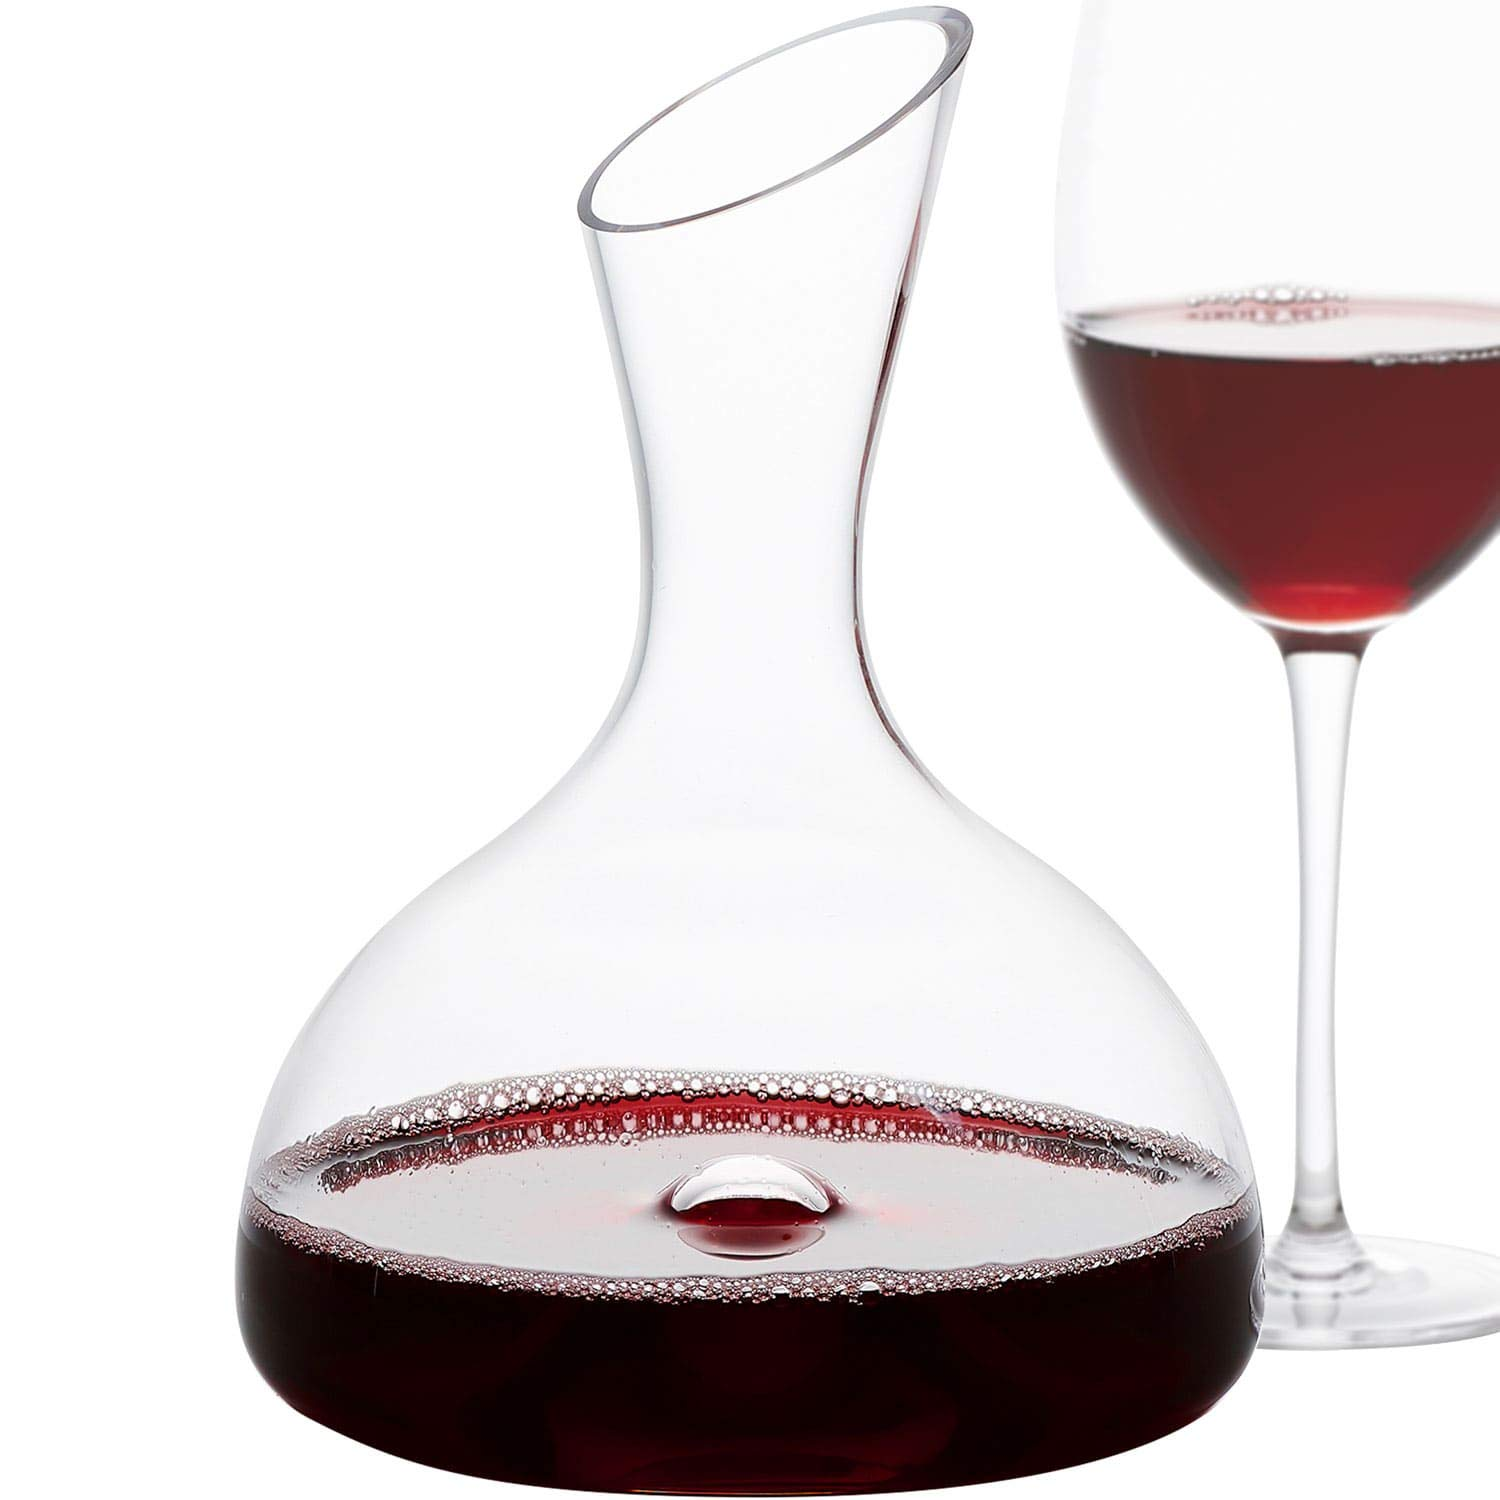 GoodGlassware Wine Decanter – Personal Red Wine Carafe with Wide Base and Aerating Punt - Crystal Clear Clarity, 100% Lead Free Glass (44 oz Capacity)